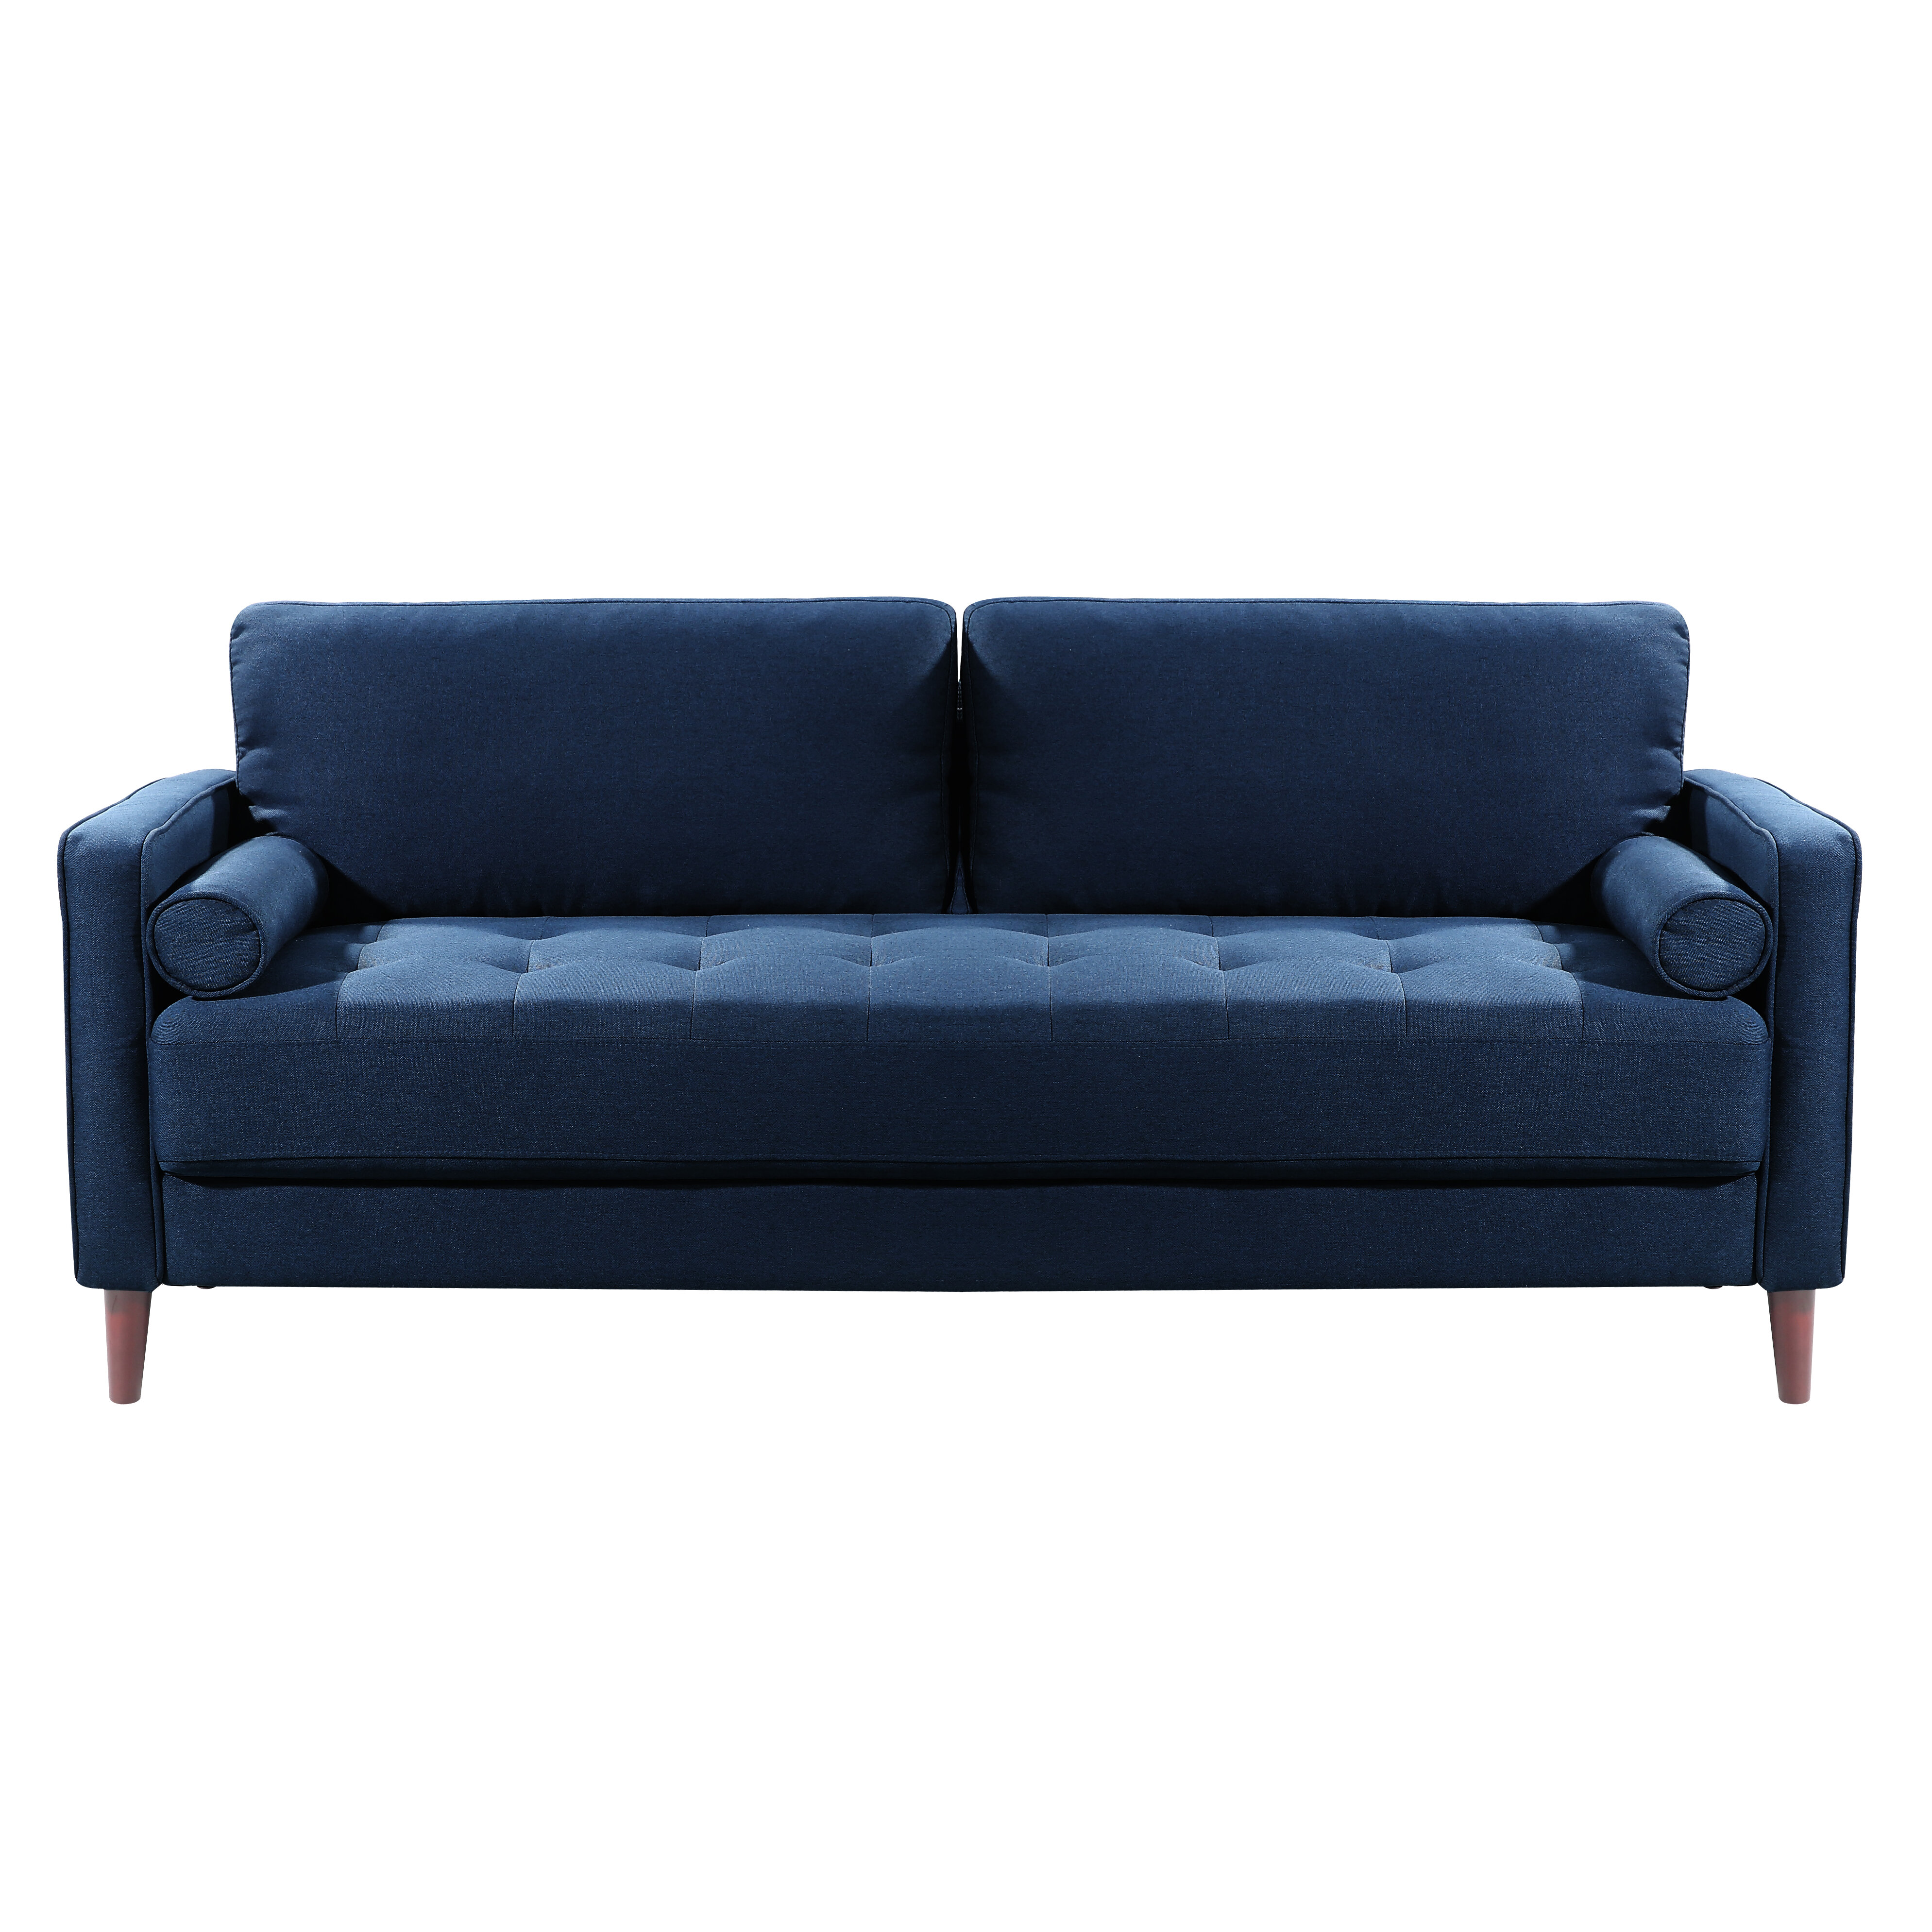 Blue Sofas Couches You Ll Love In